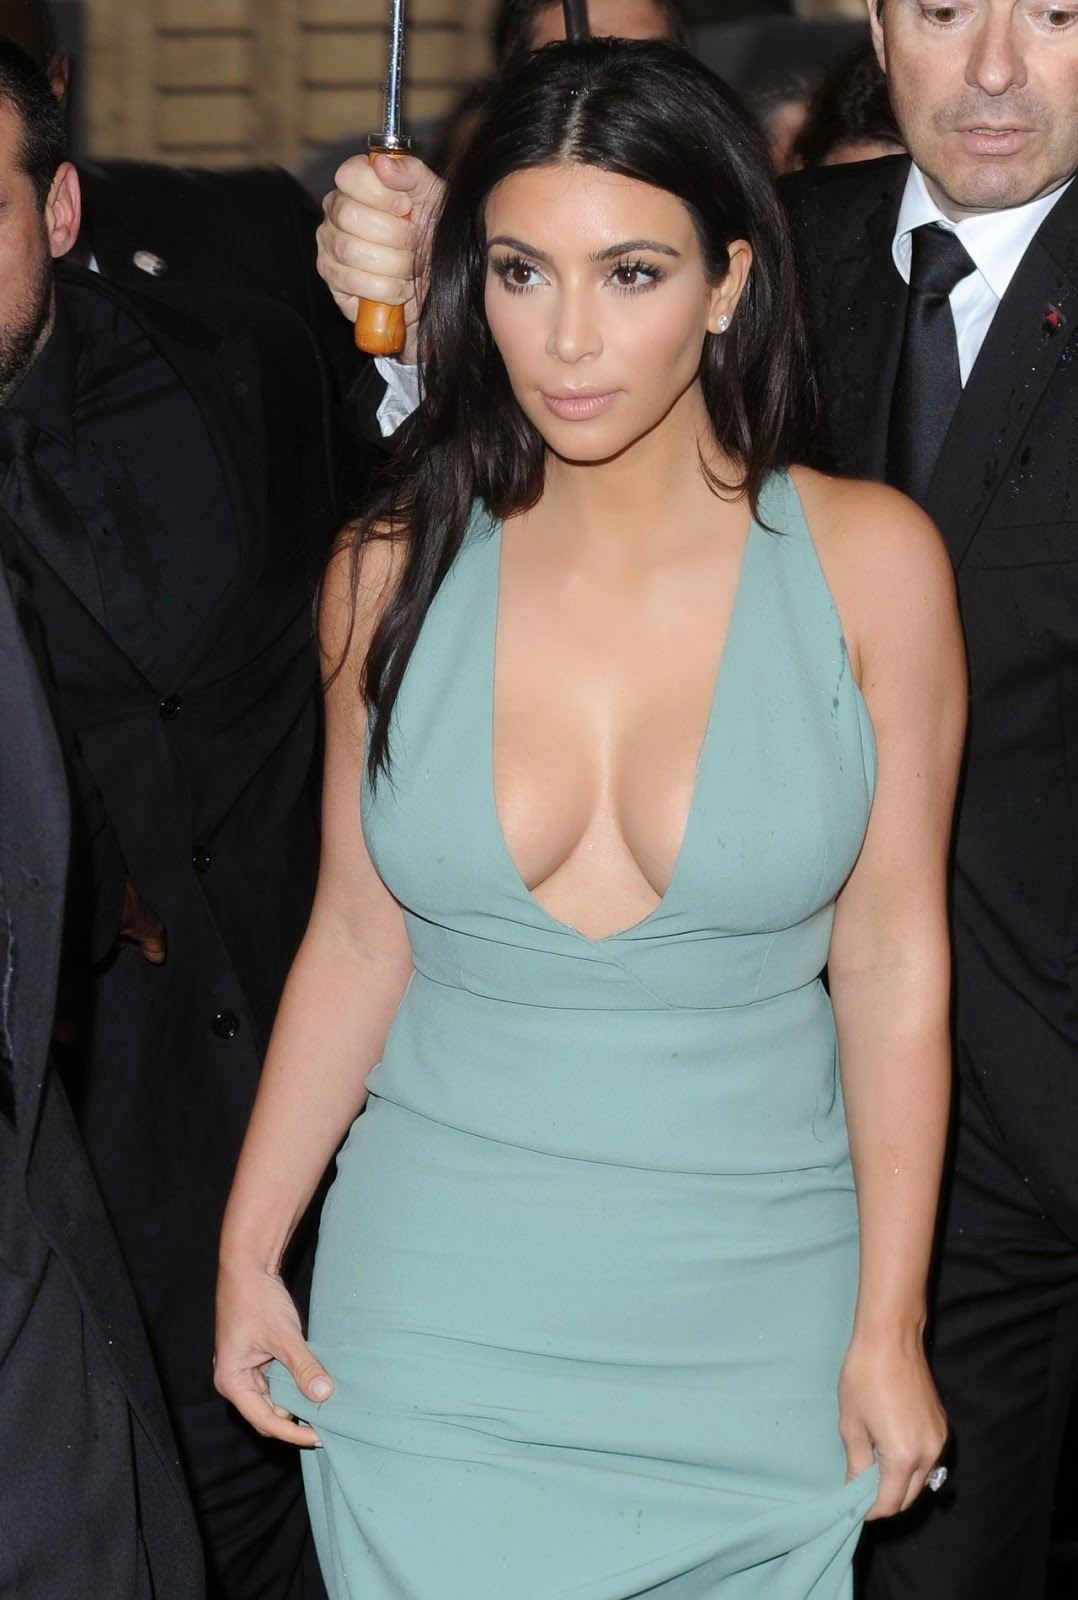 Kim Kardashian displays cleavage in a low cut gown at the ...